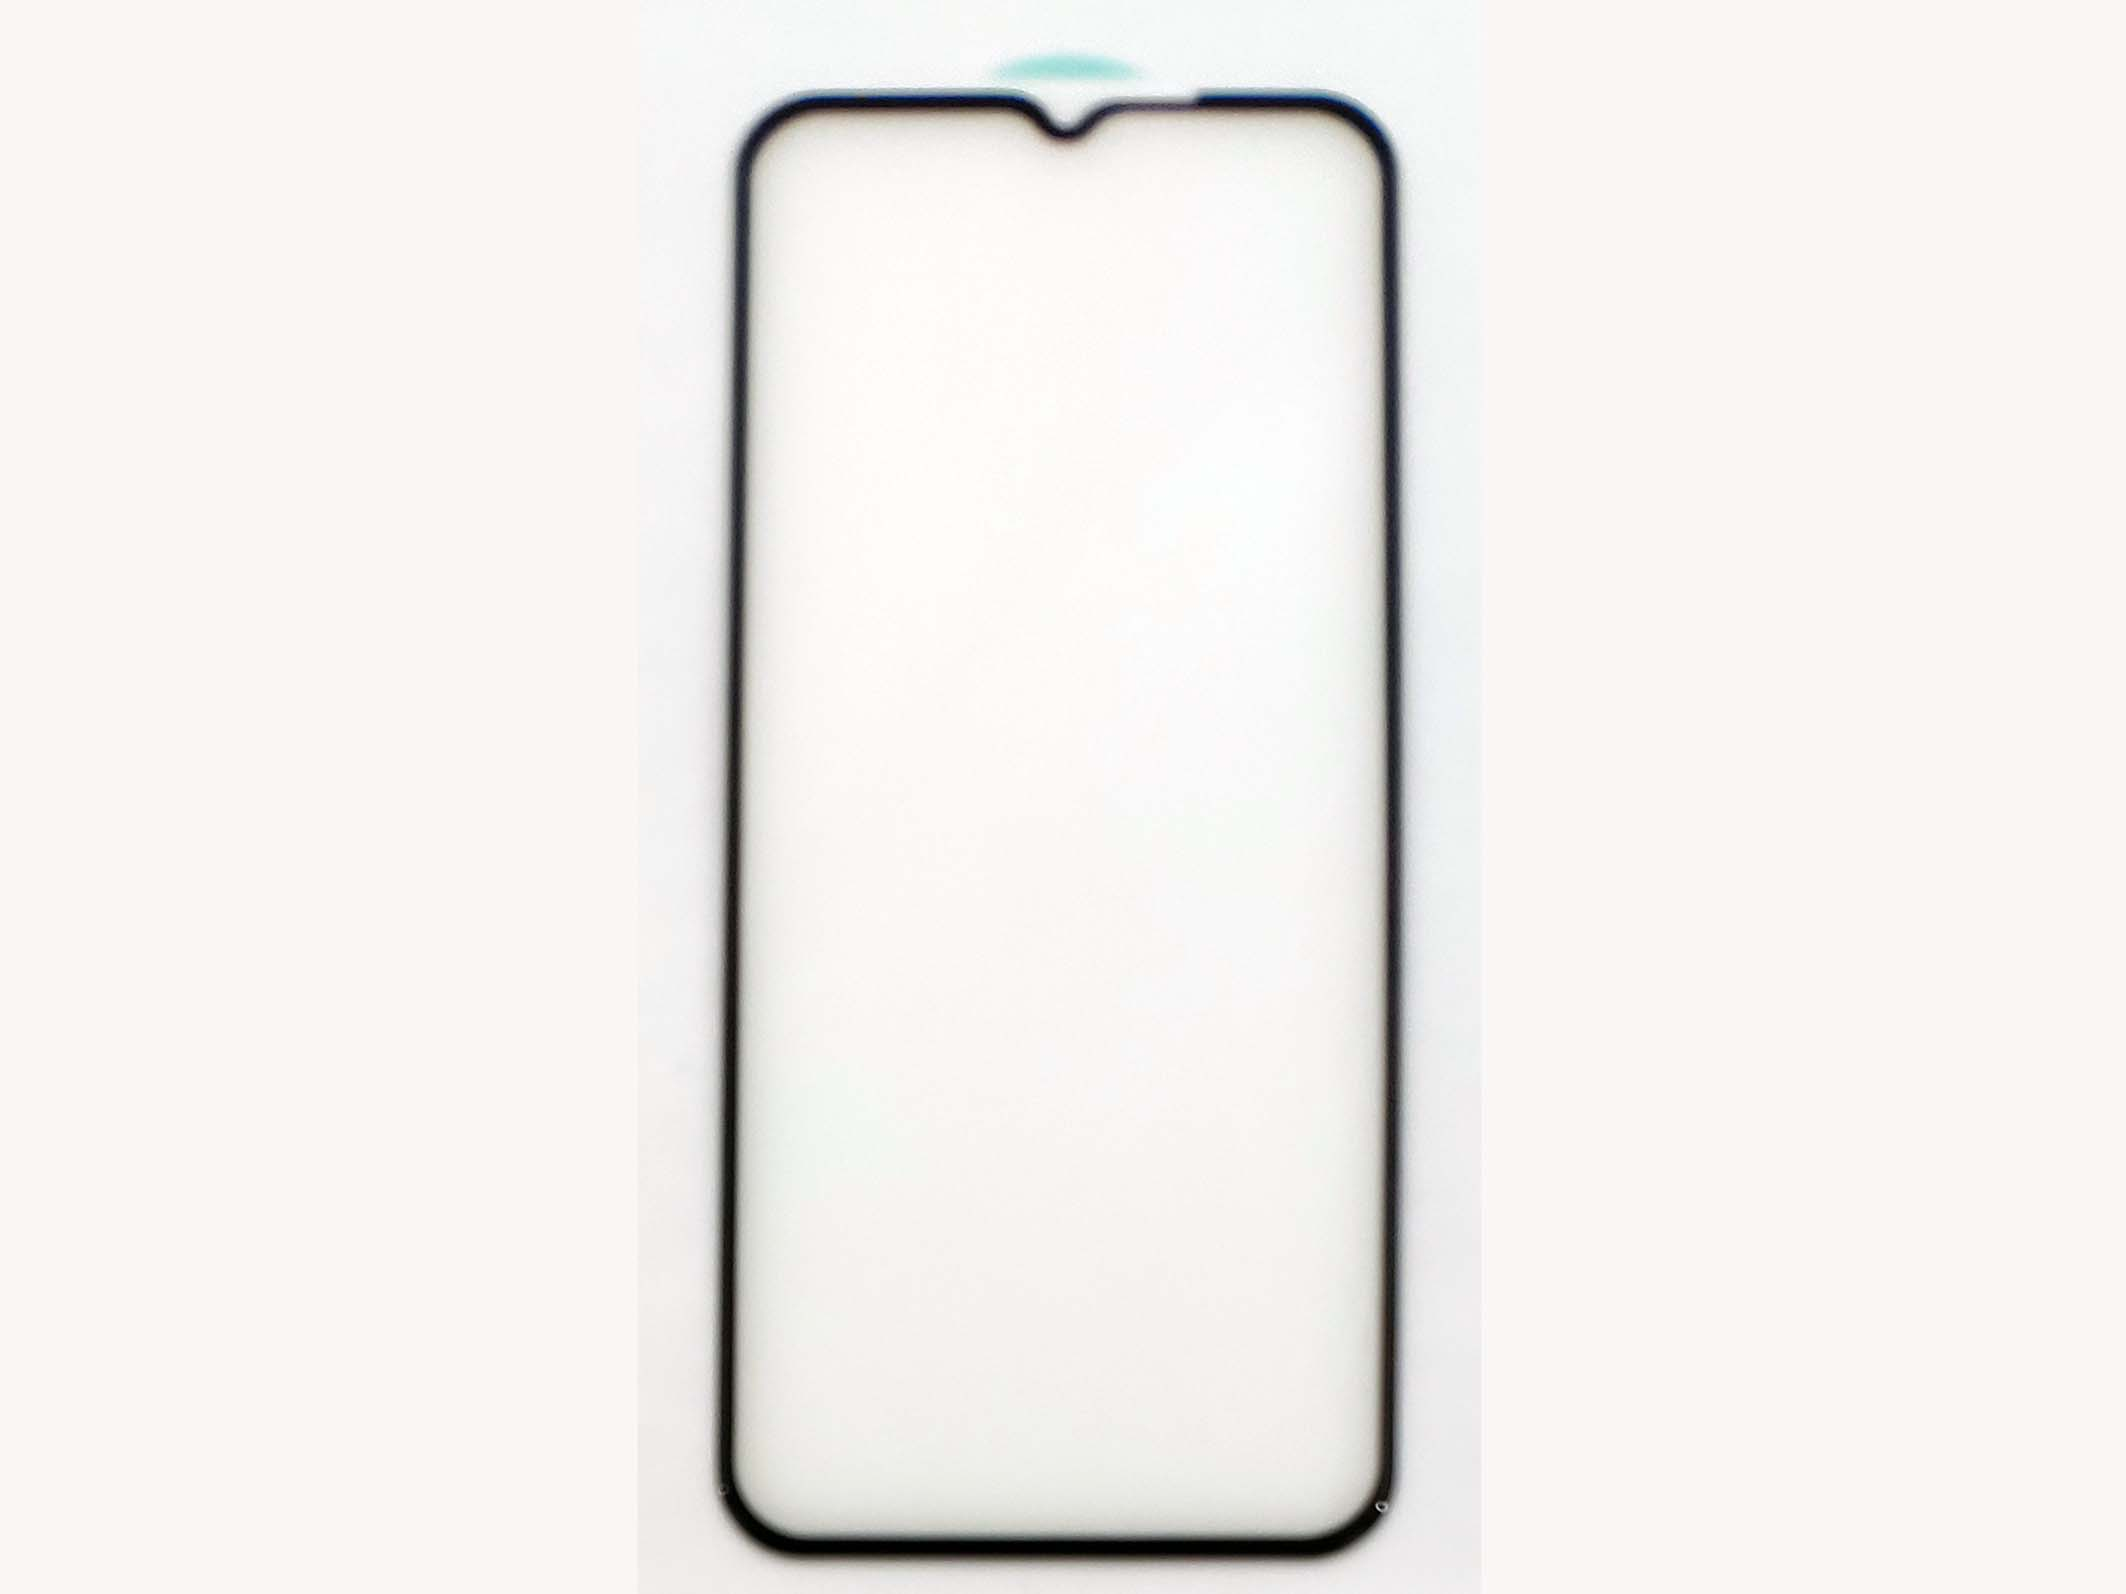 Home Button for iPad Air - White